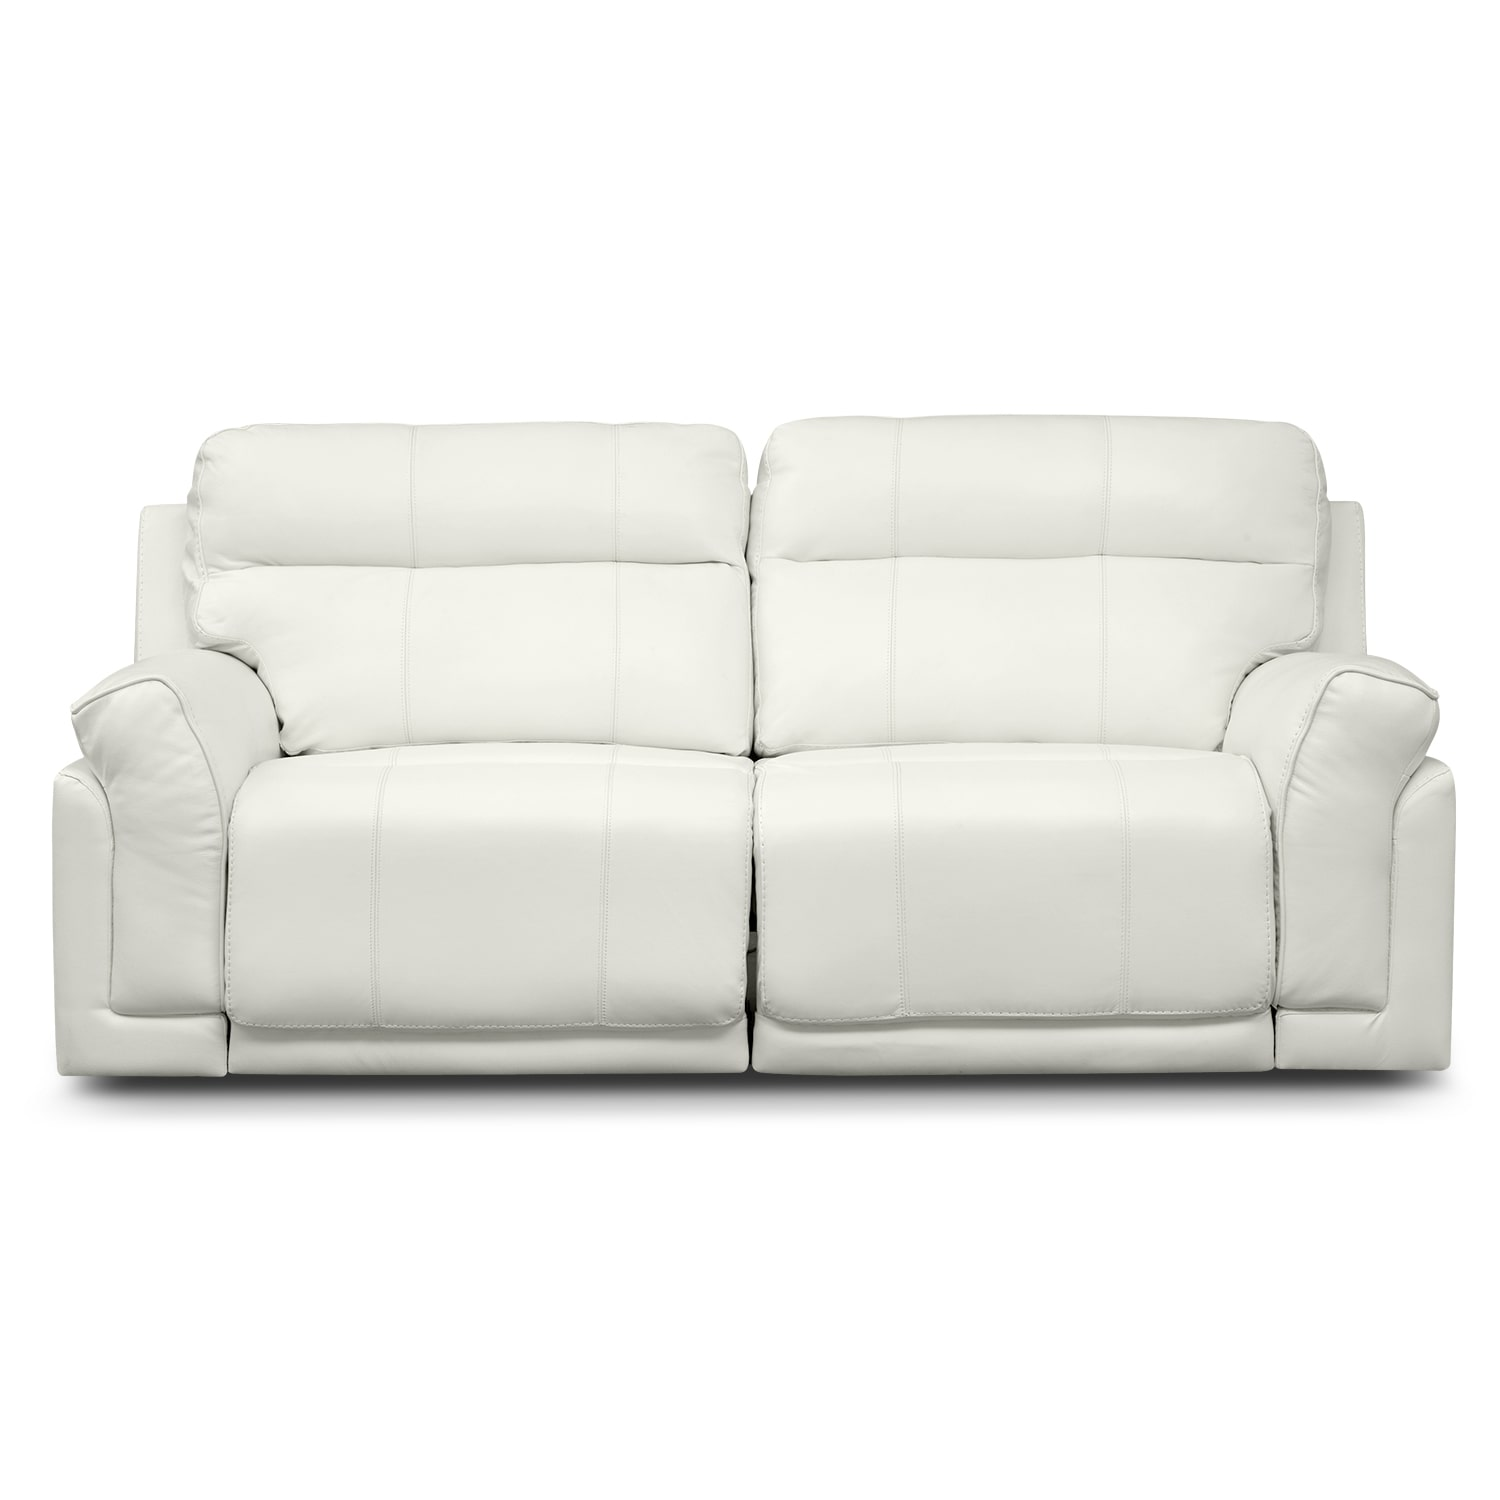 Antonio white power reclining sofa furniturecom for White sectional sofa with recliners